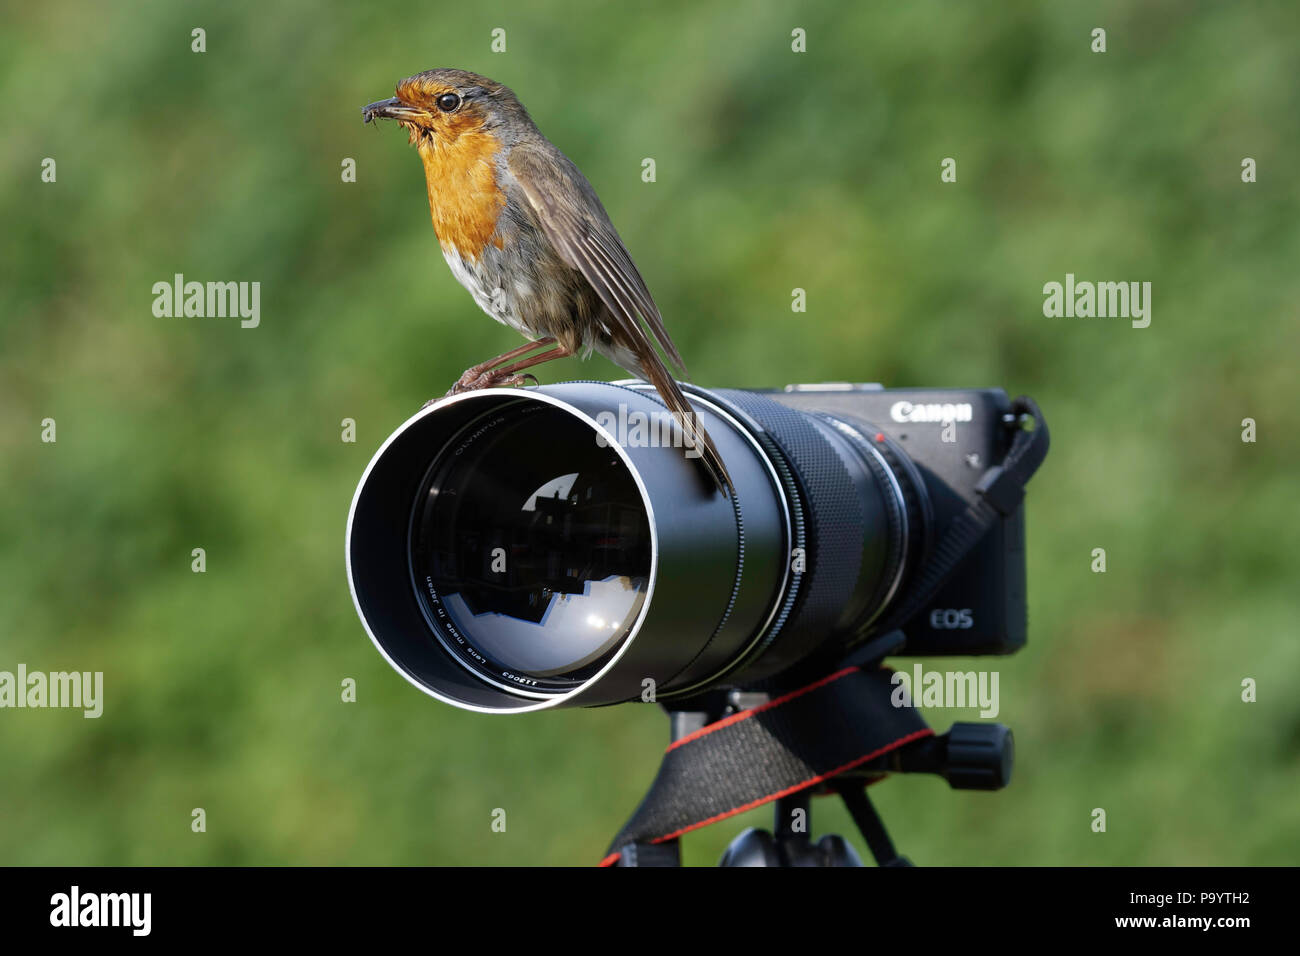 a cheeky robin using a digital camera as a perch Stock Photo